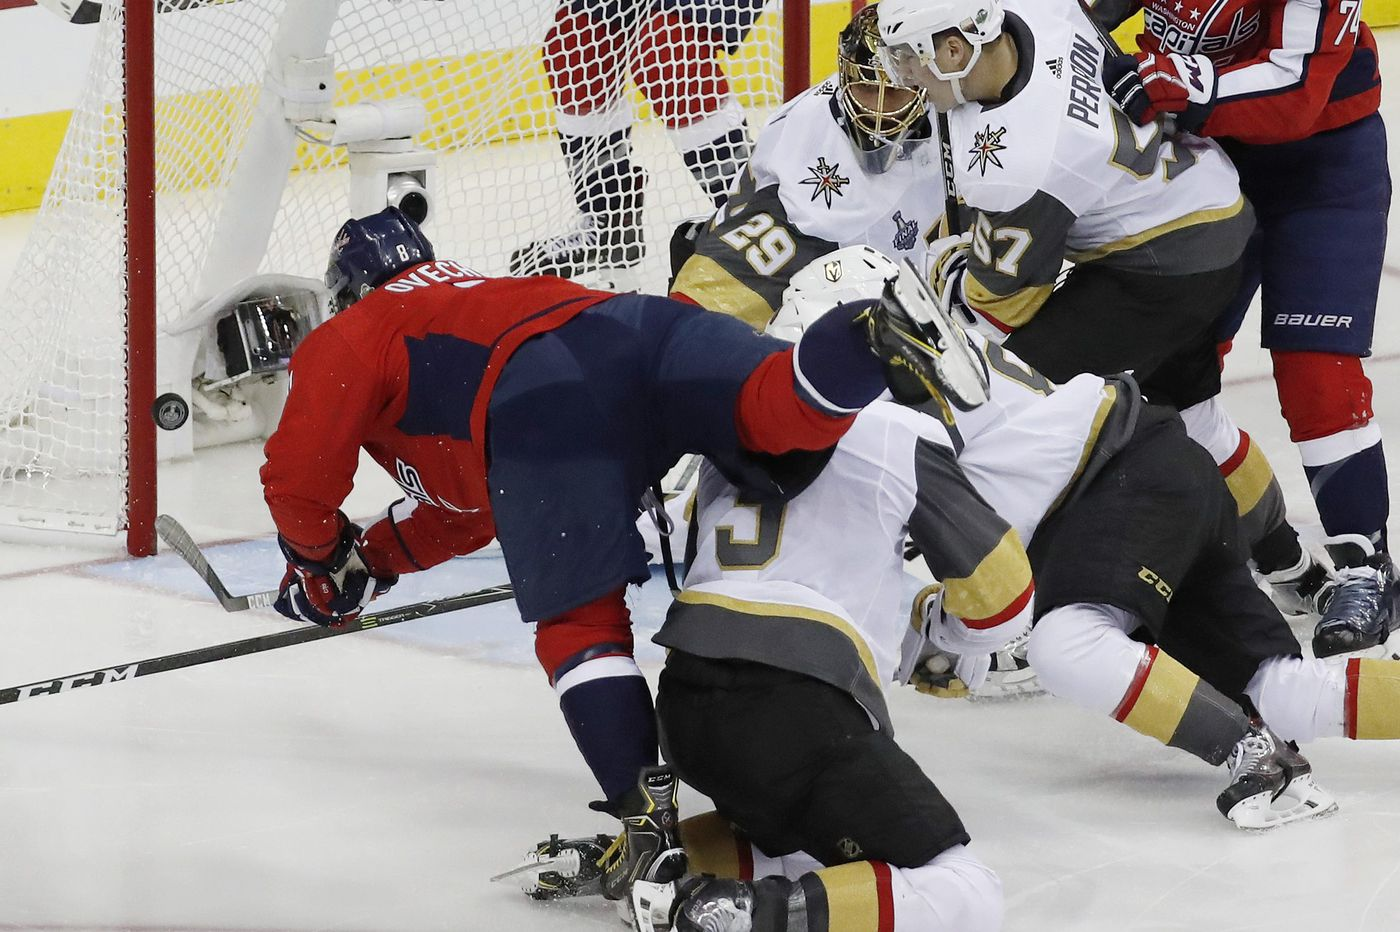 With Monday's Game 4, Capitals will try to put Vegas in deep hole and move closer to first Stanley Cup